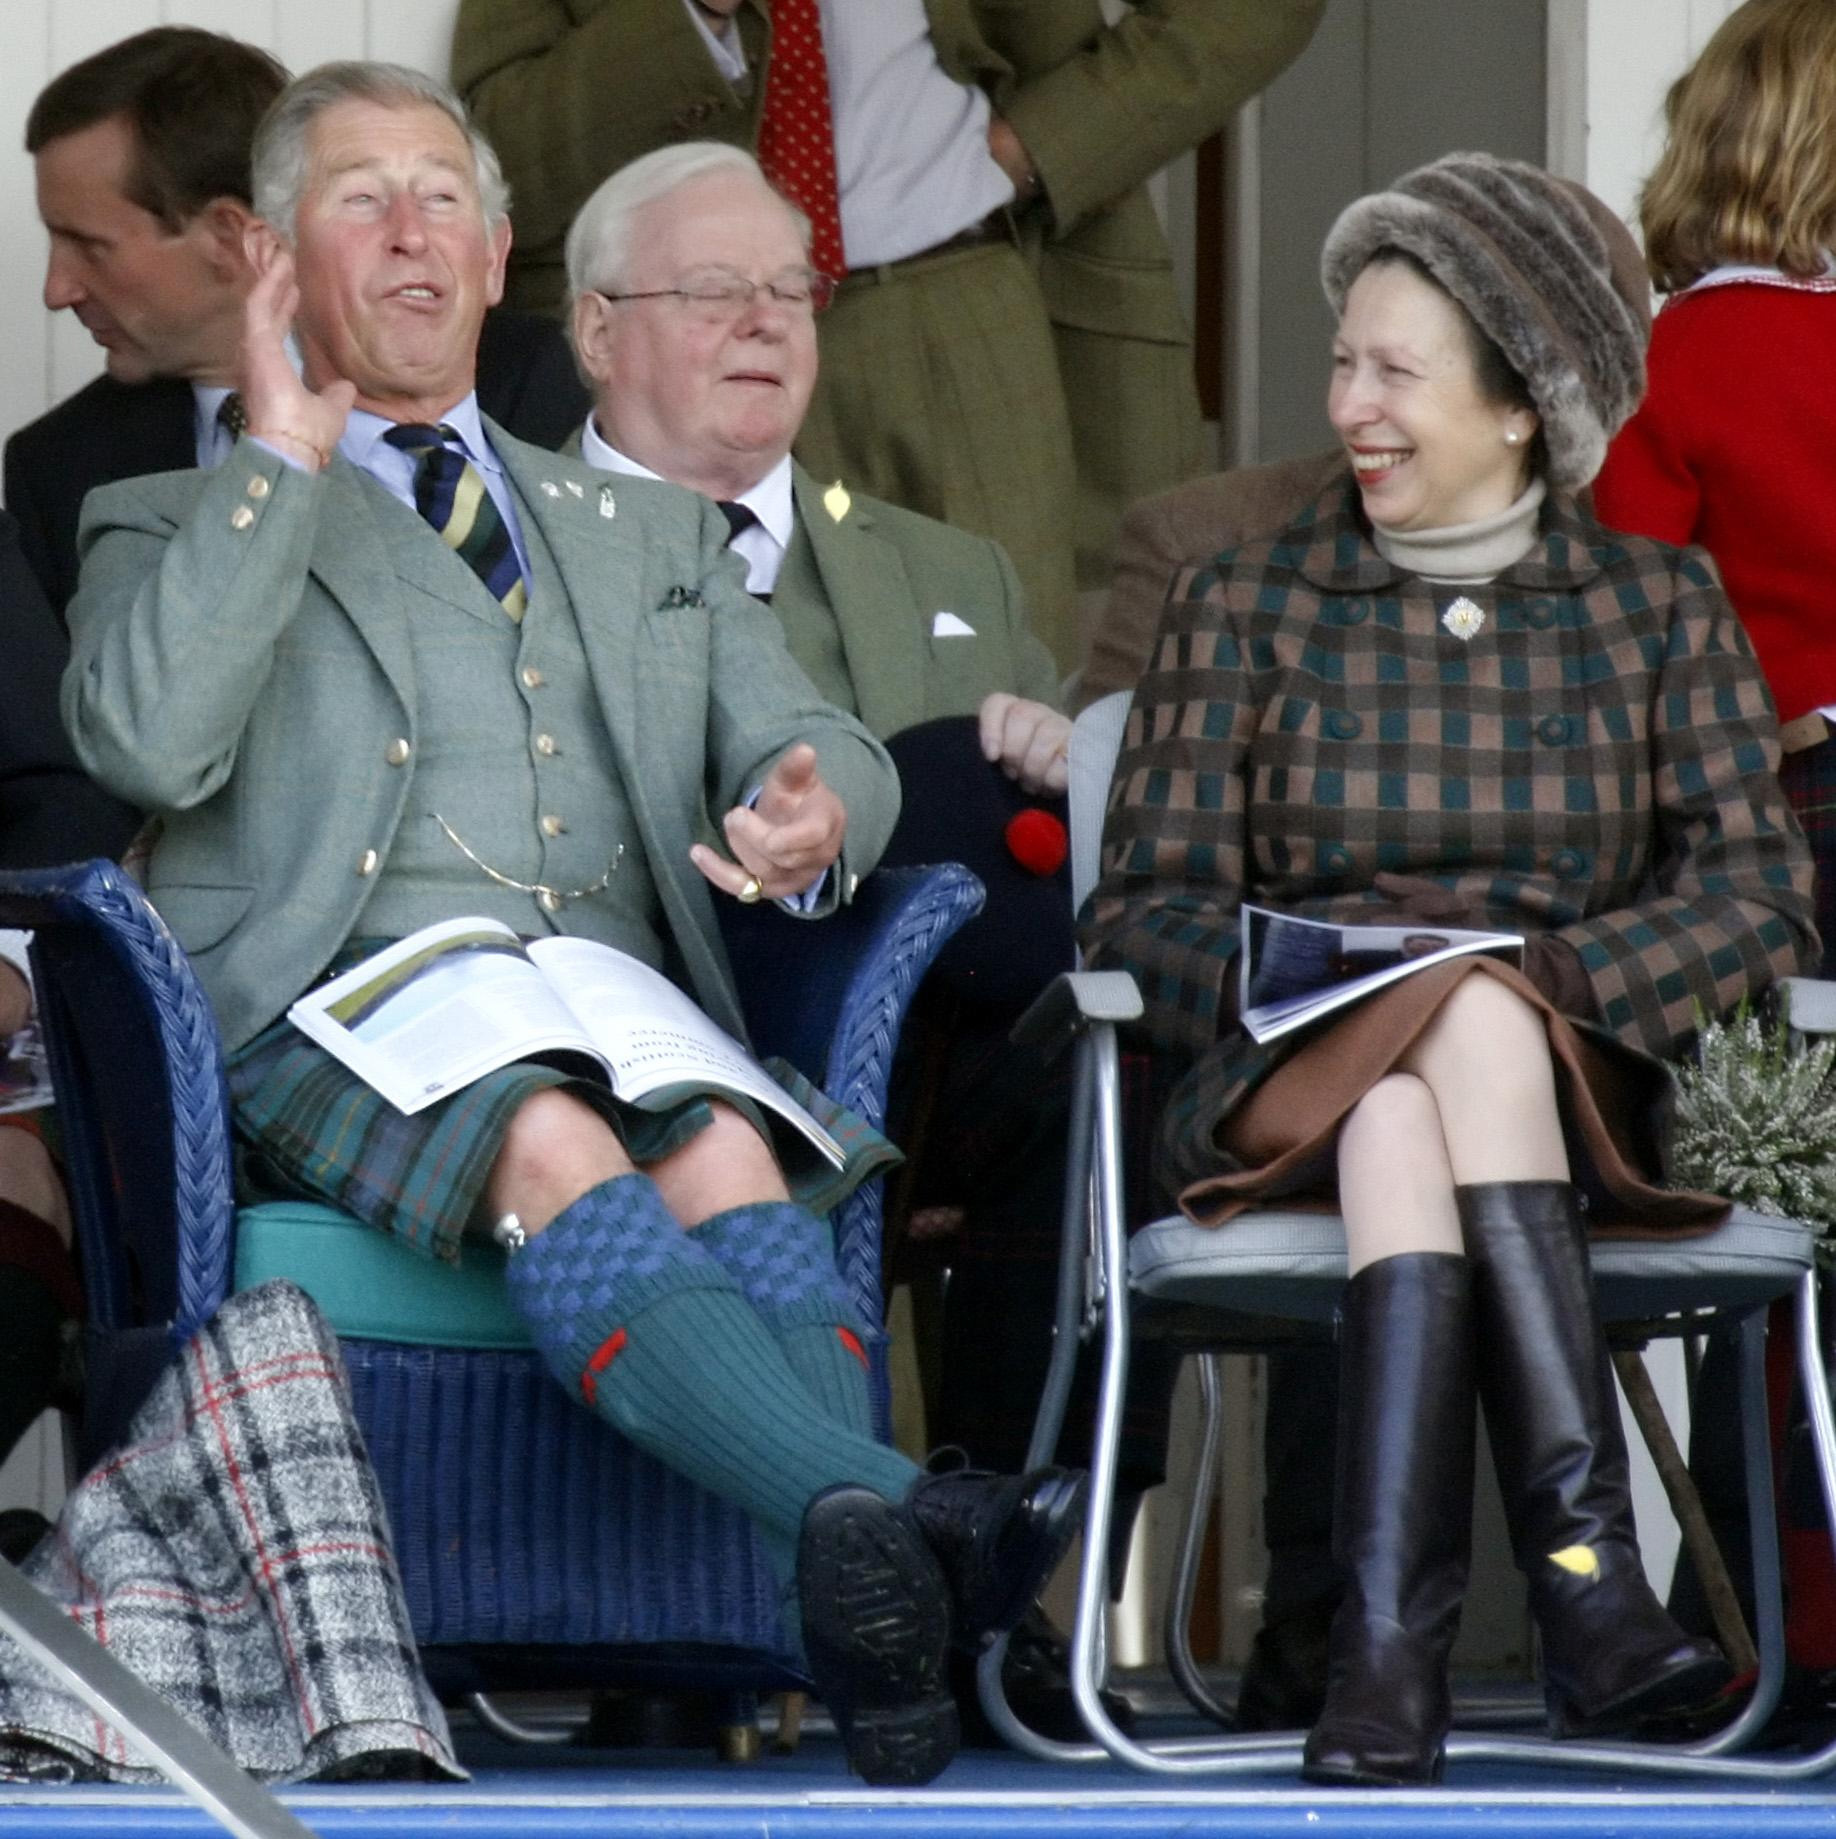 File photo dated 05/09/09 of the Prince of Wales and the Princess Royal during the Braemar Gathering Highland Games in Scotland. Anne celebrates her 70th birthday on Saturday.,Image: 551795601, License: Rights-managed, Restrictions: FILE PHOTO, Model Release: no, Credit line: Danny Lawson / PA Images / Profimedia